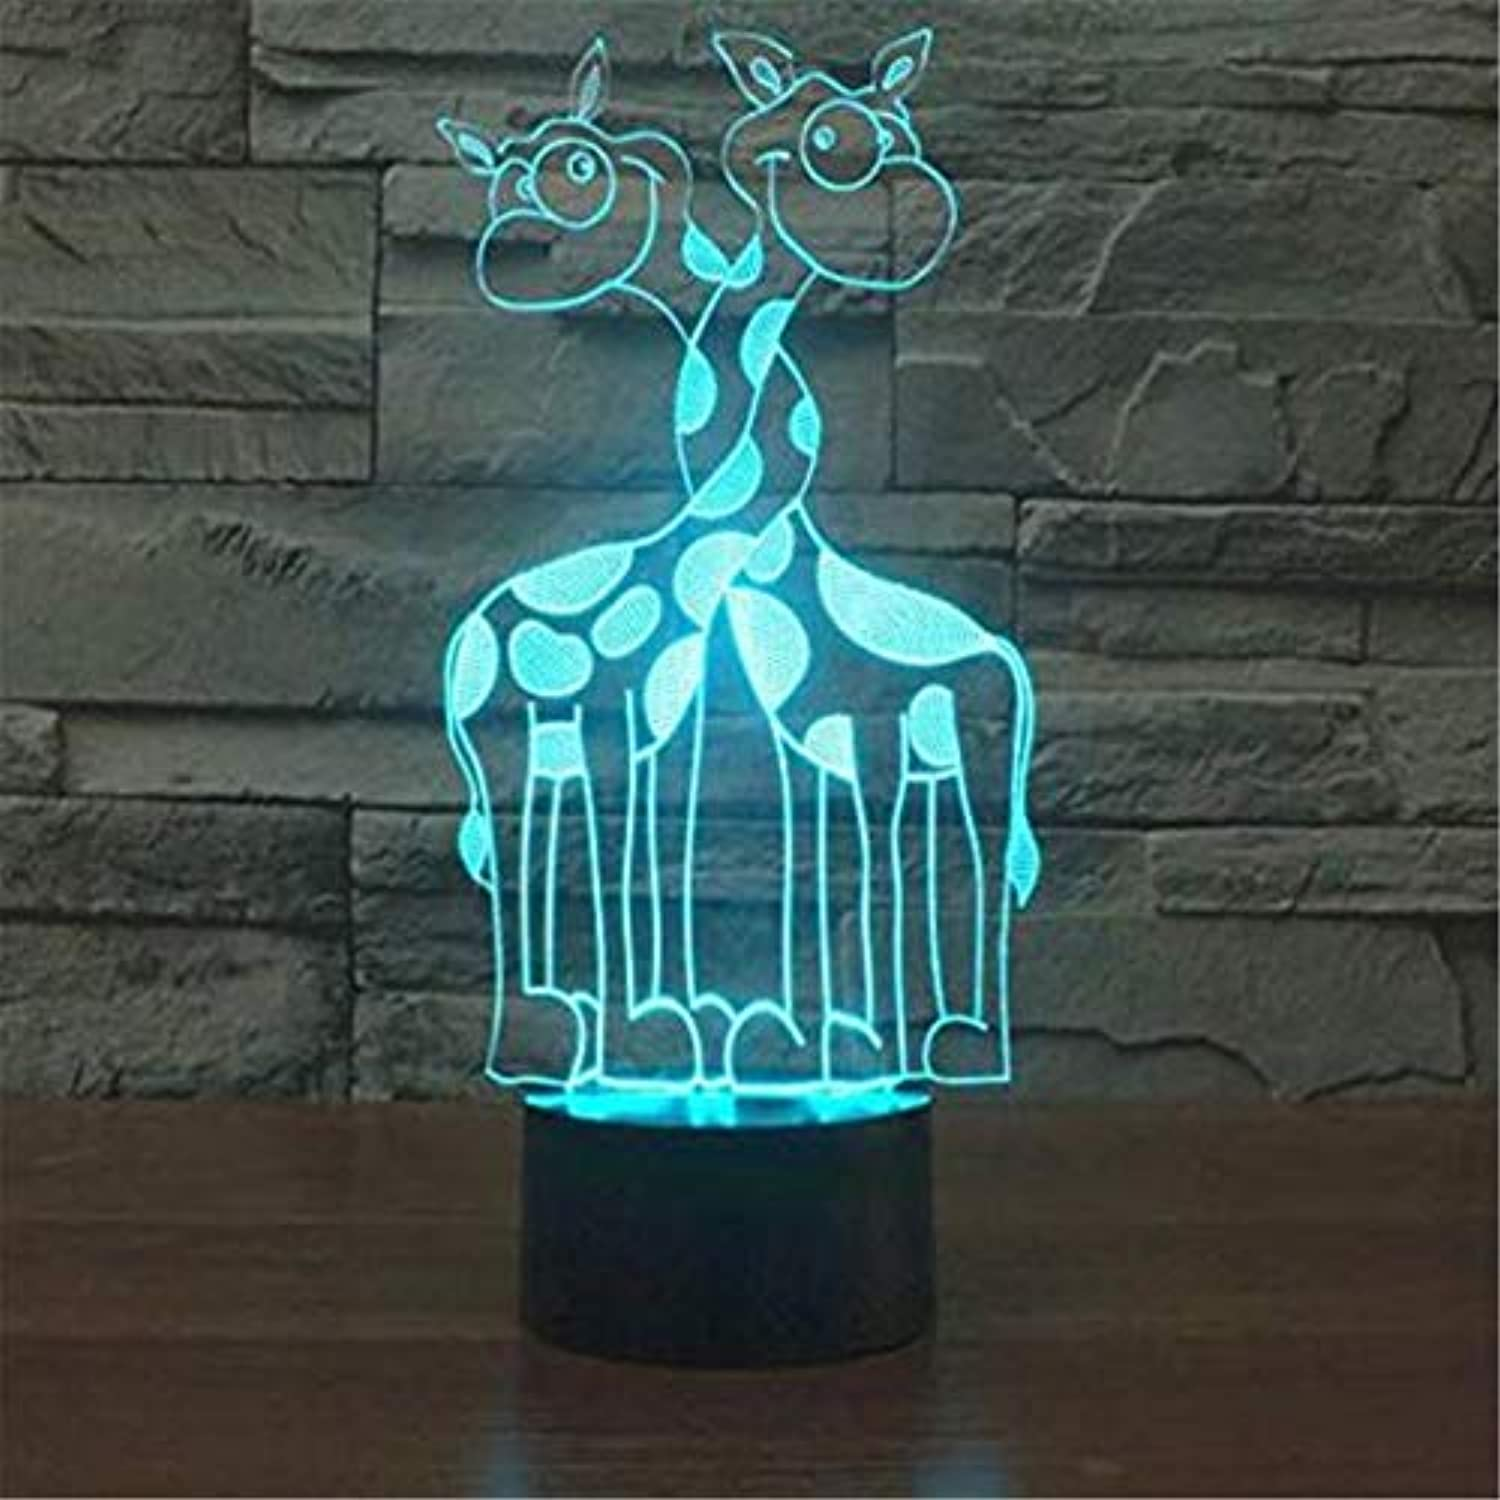 Led Lights Edison Lights 3D Acryl Nachtlicht Giraffe